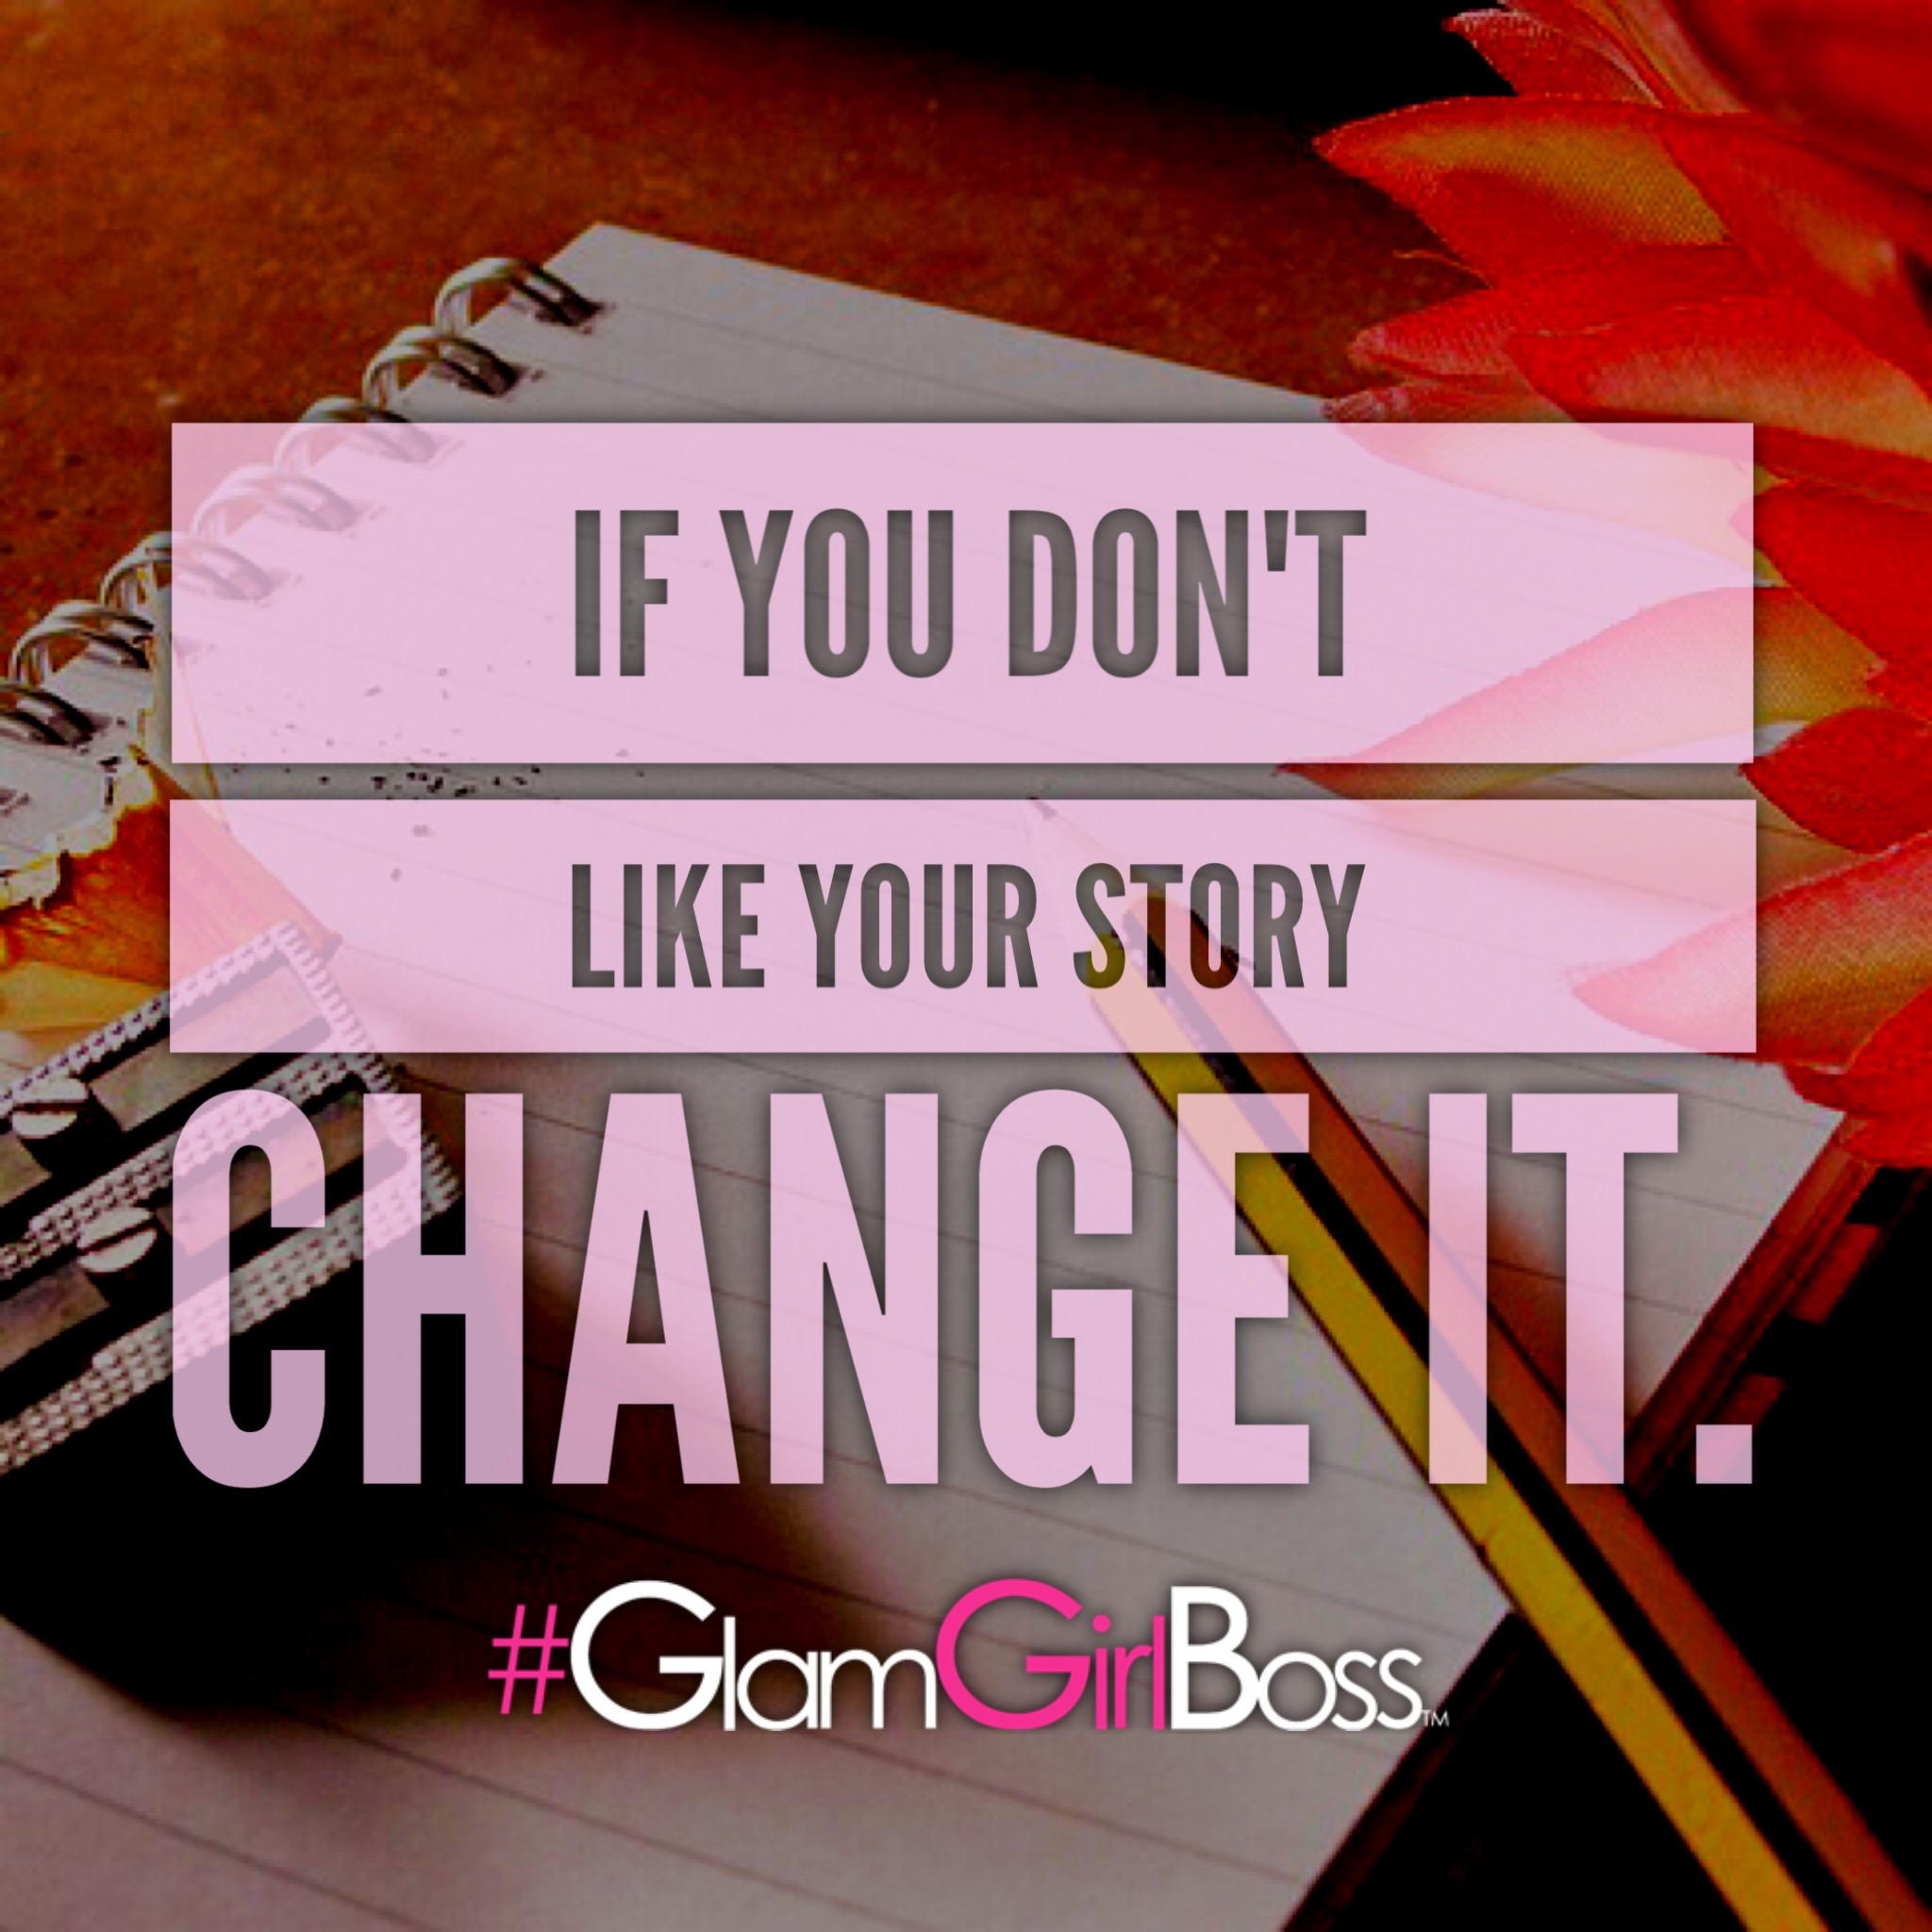 Don't like your story, change it.